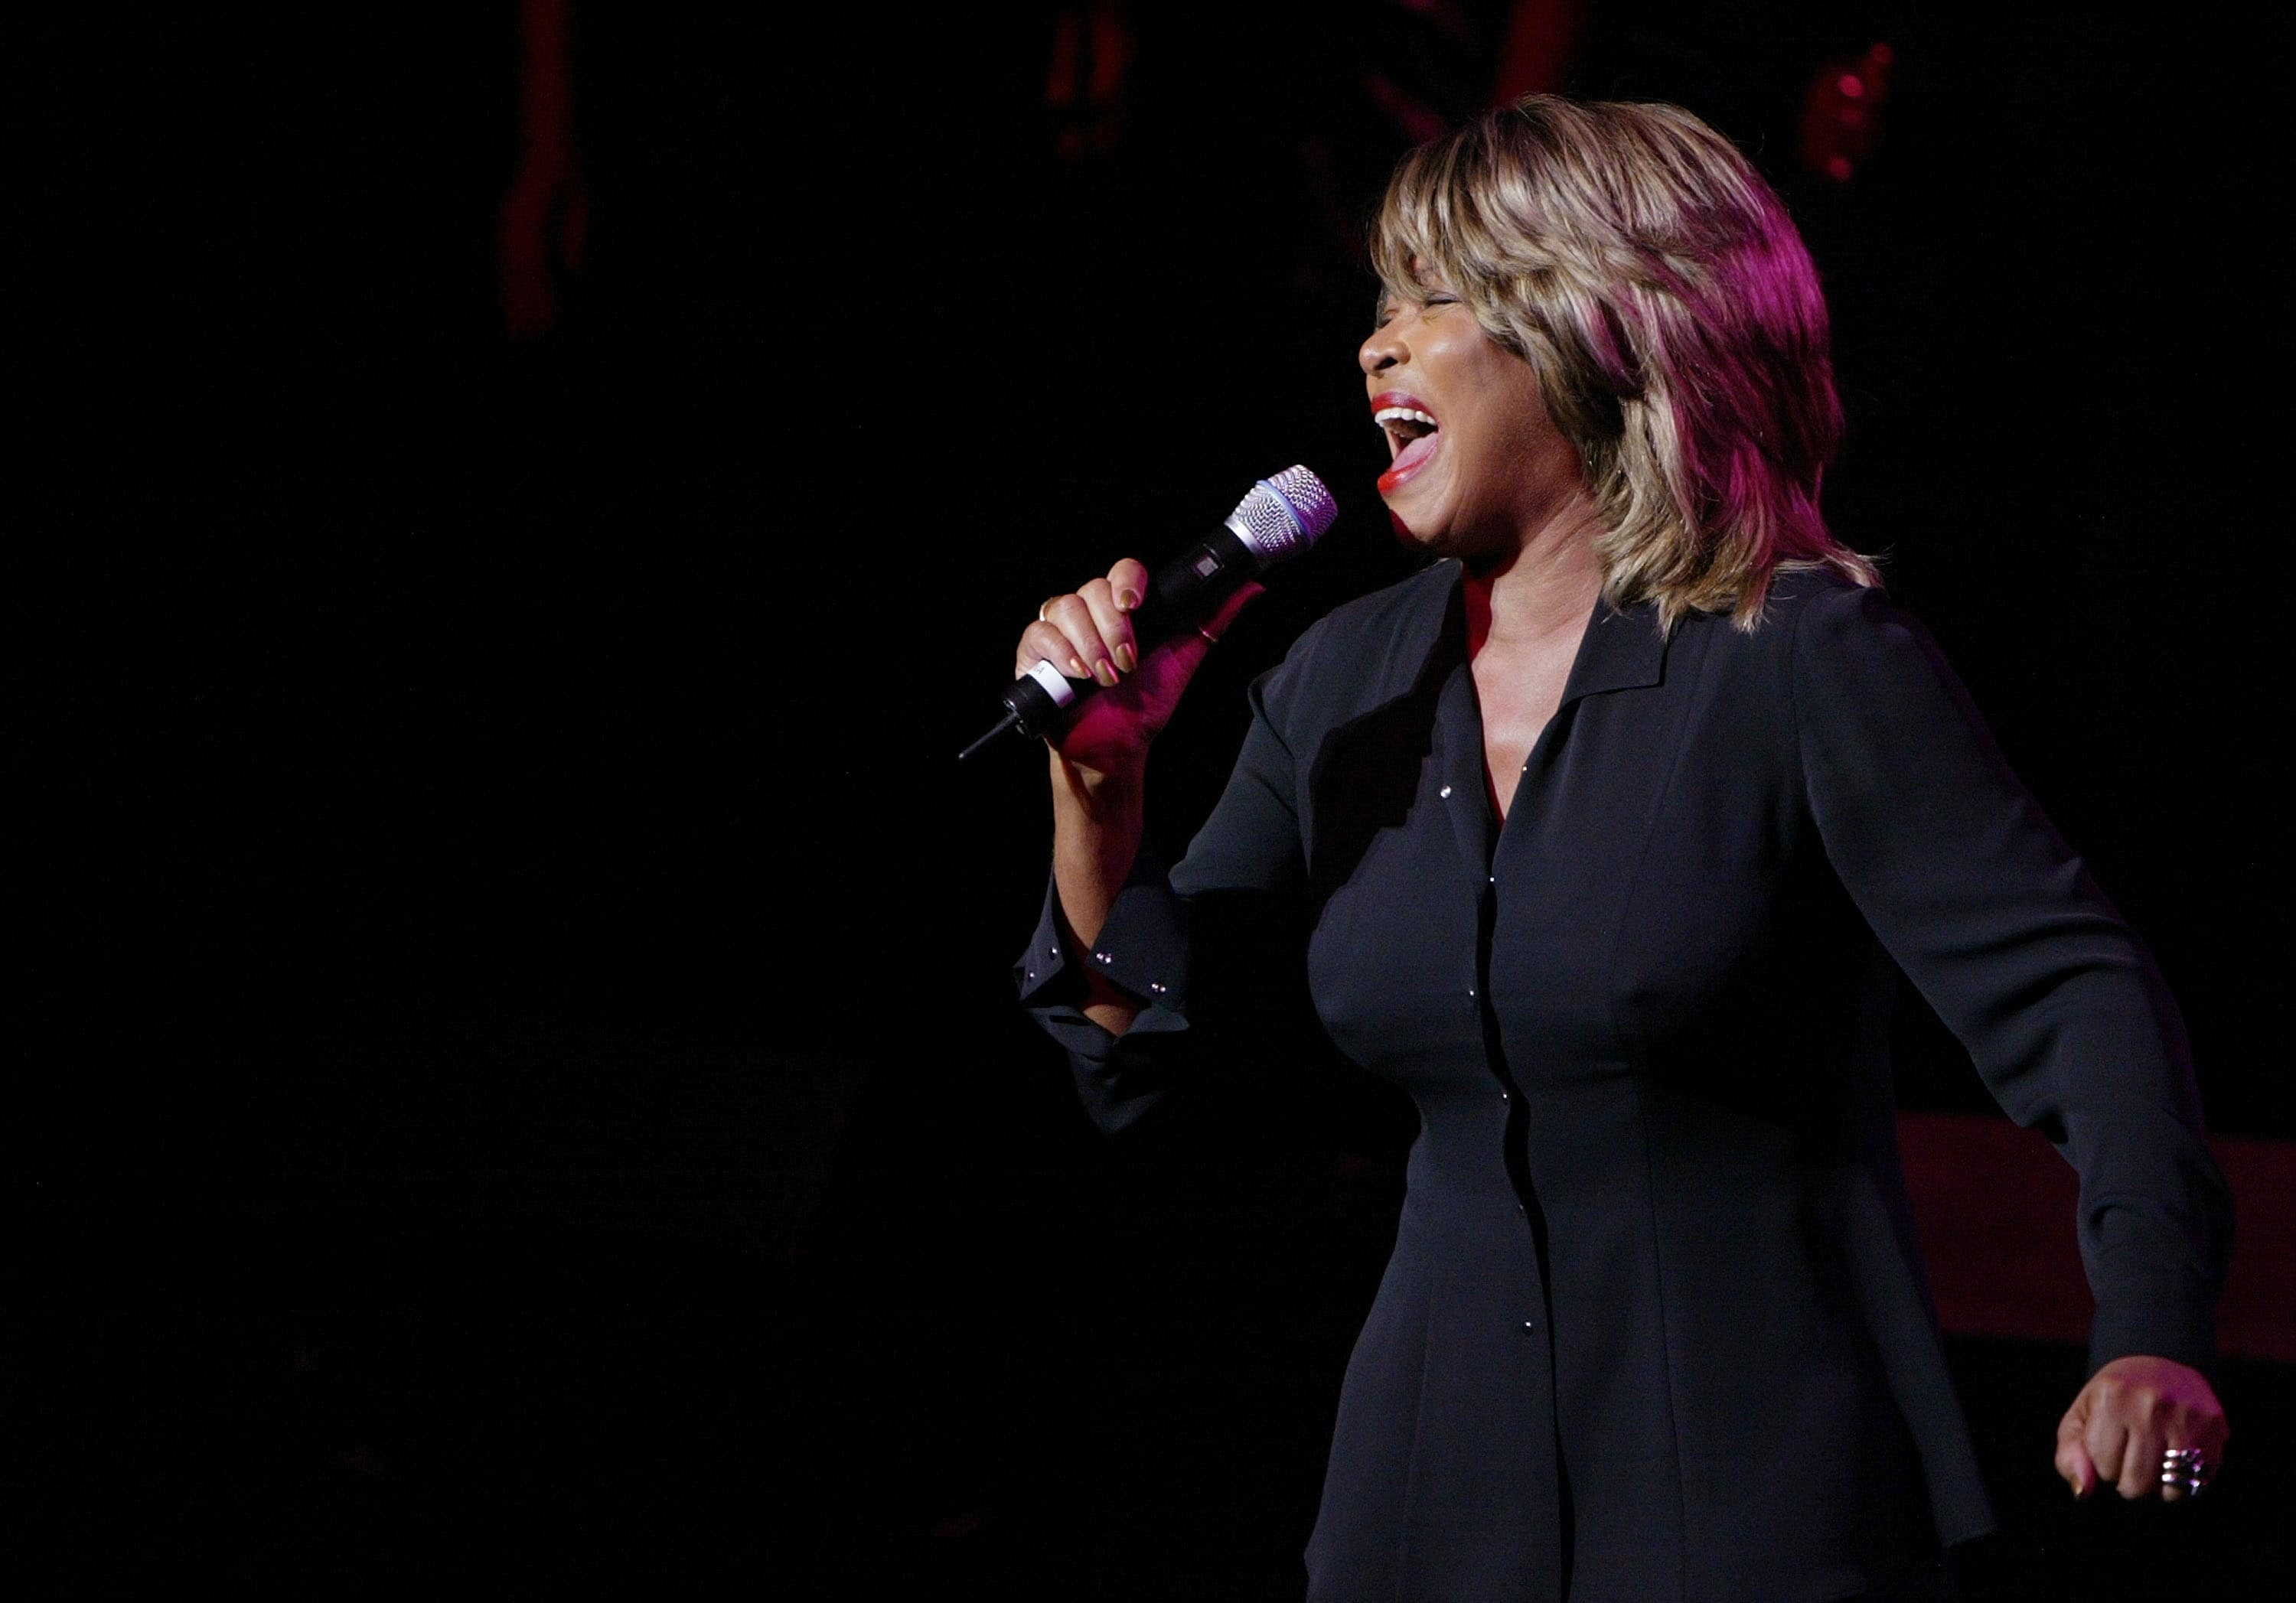 Tina Turner admitted that Craig was deeply affected by Ike's abuse (Getty Images)